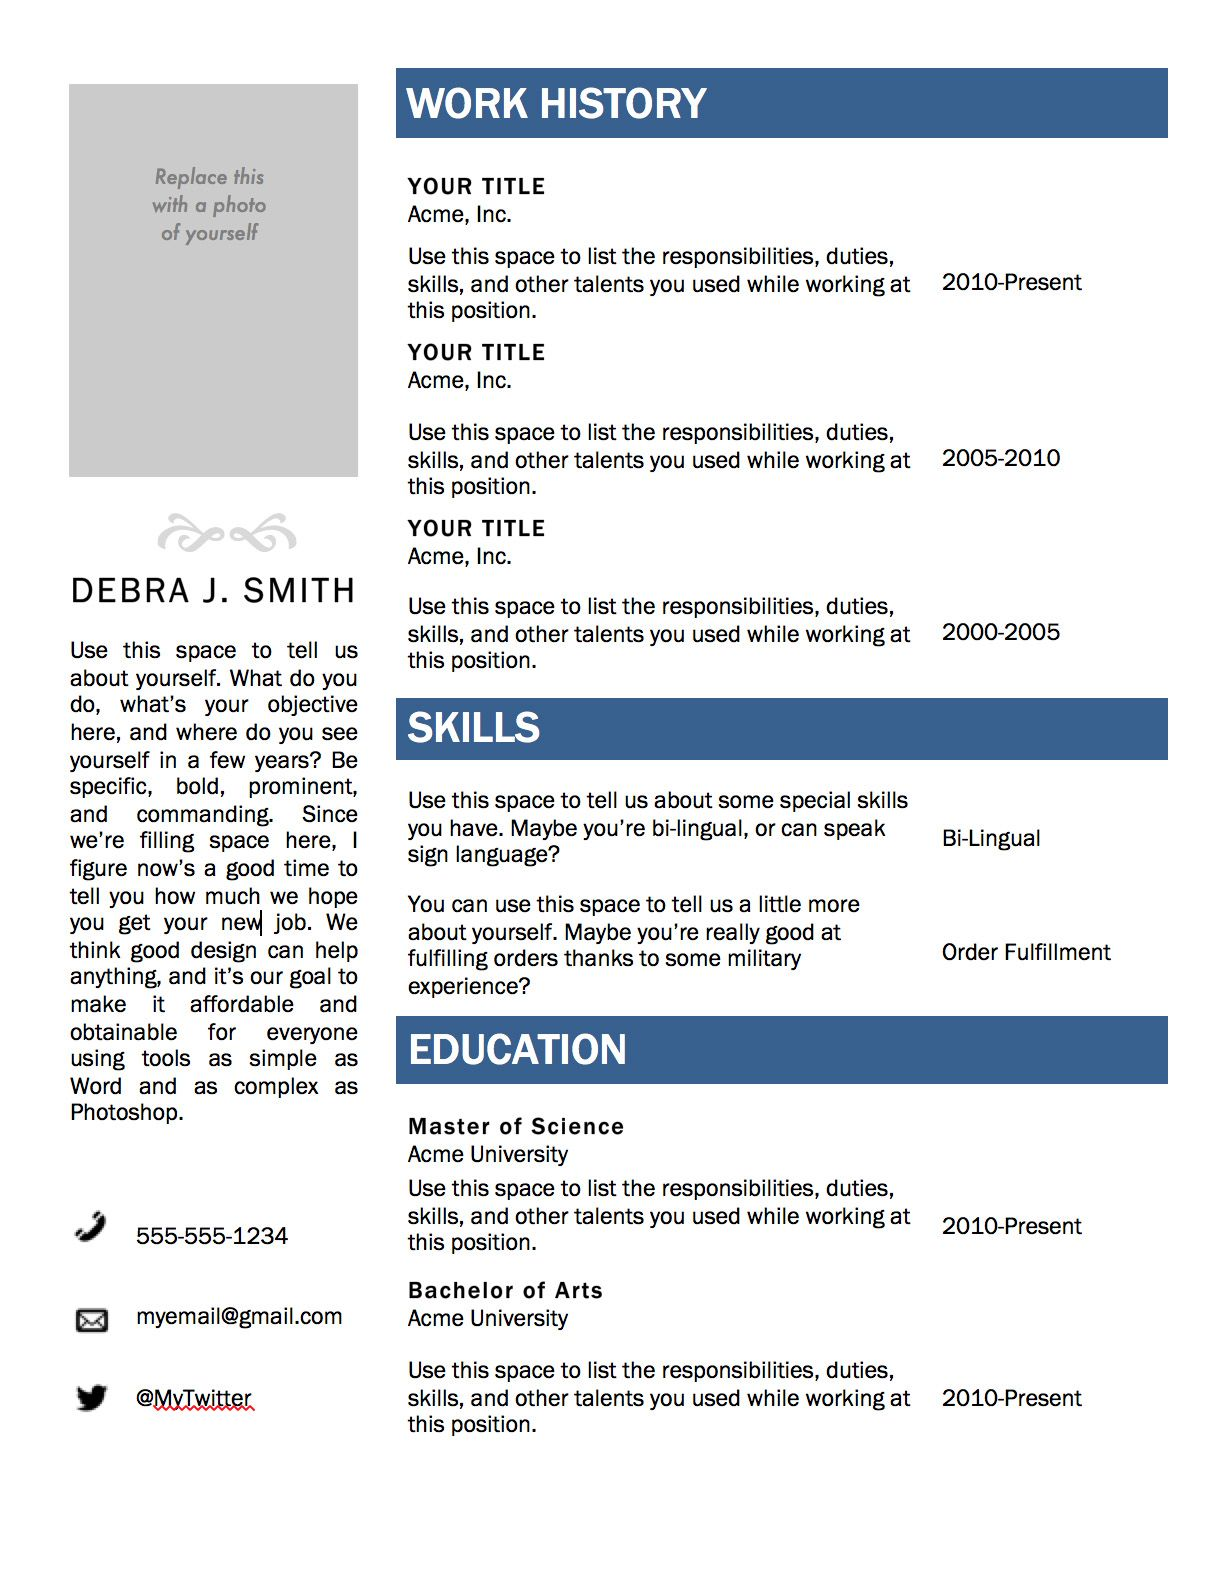 FREE Microsoft Word Resume Template | Microsoft word resume ...